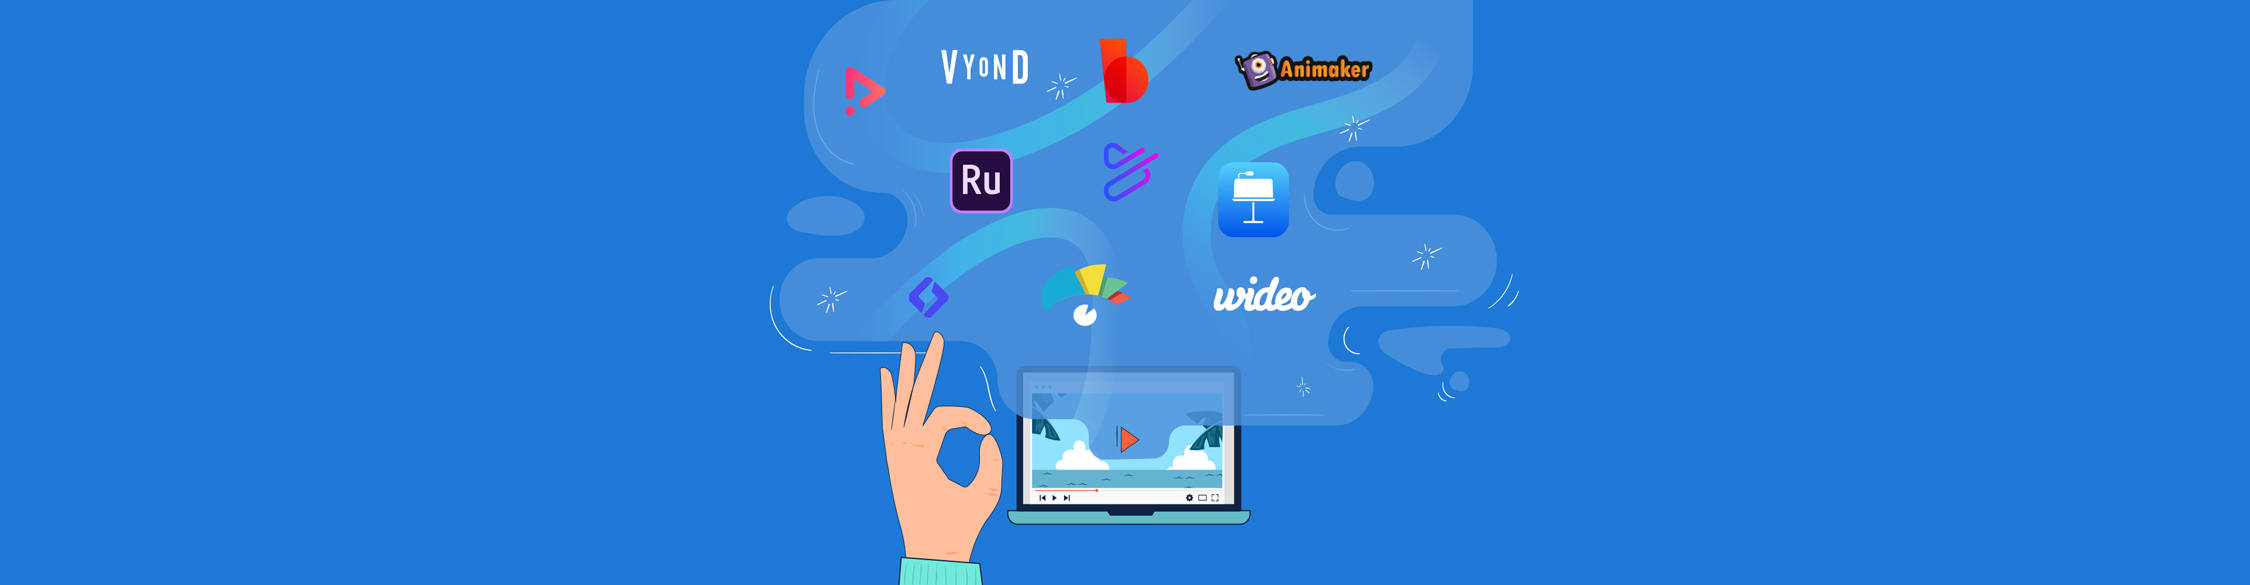 Video Animation Apps